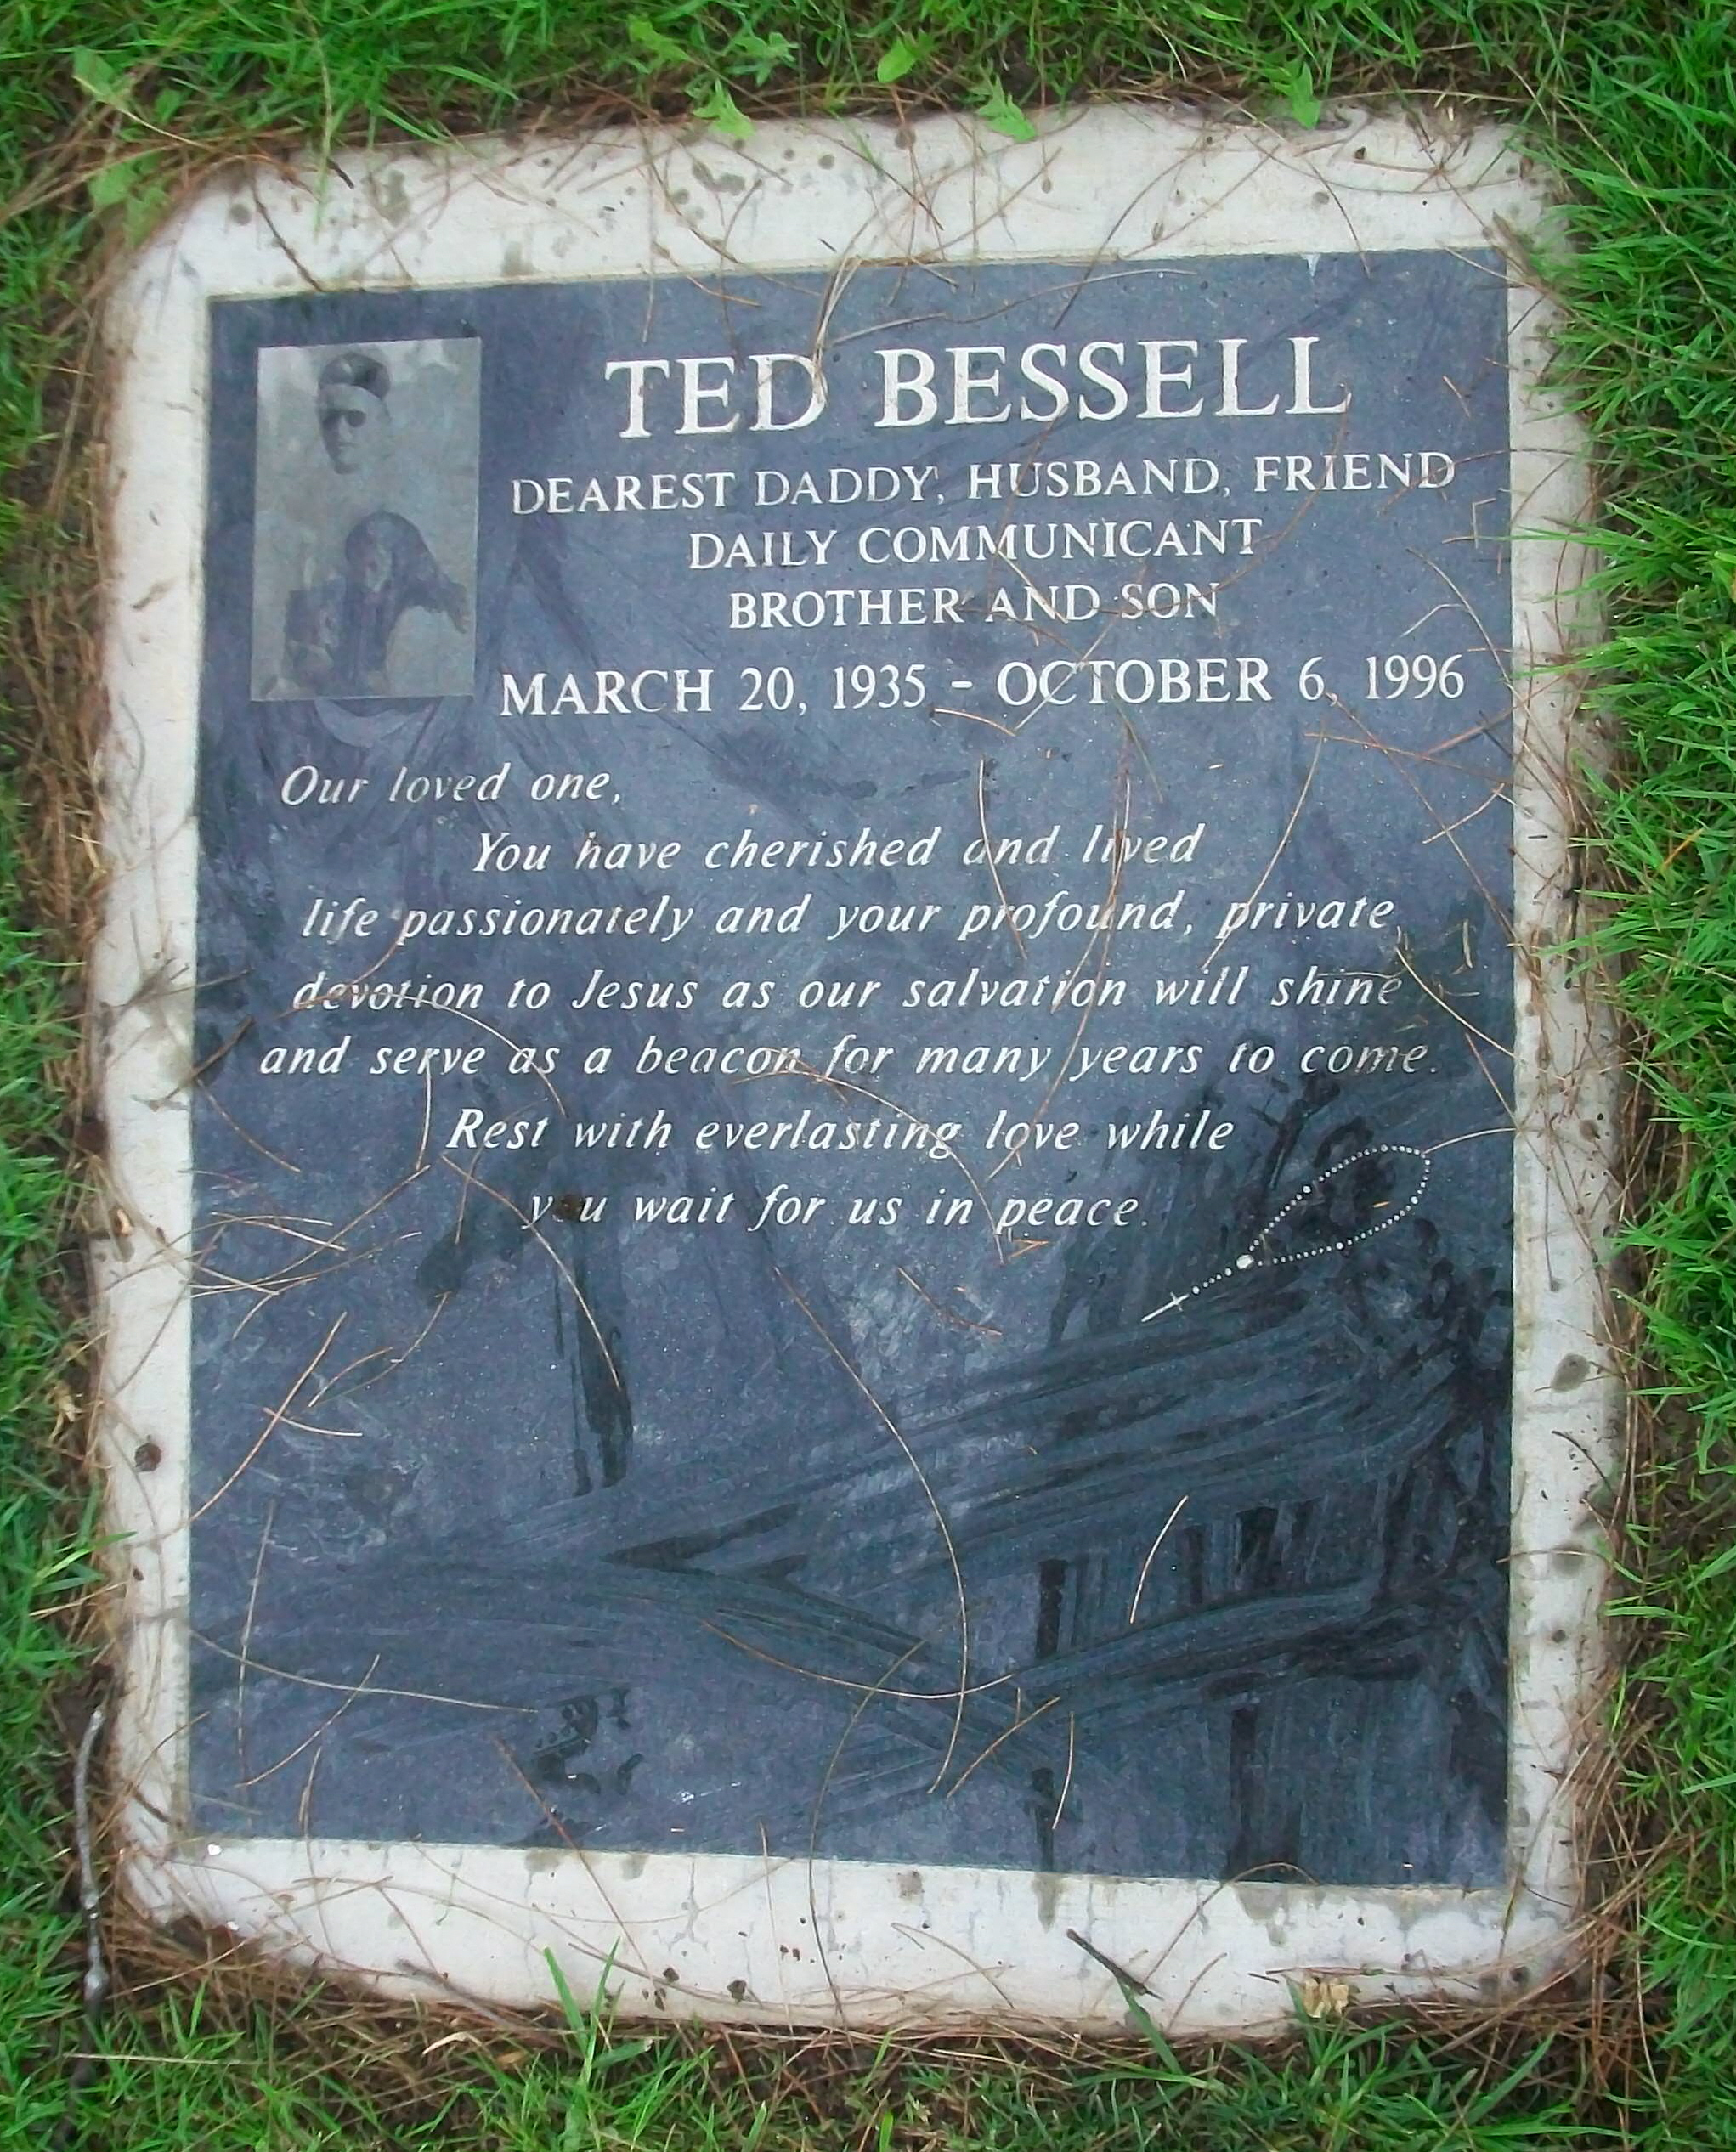 ted bessell jewish